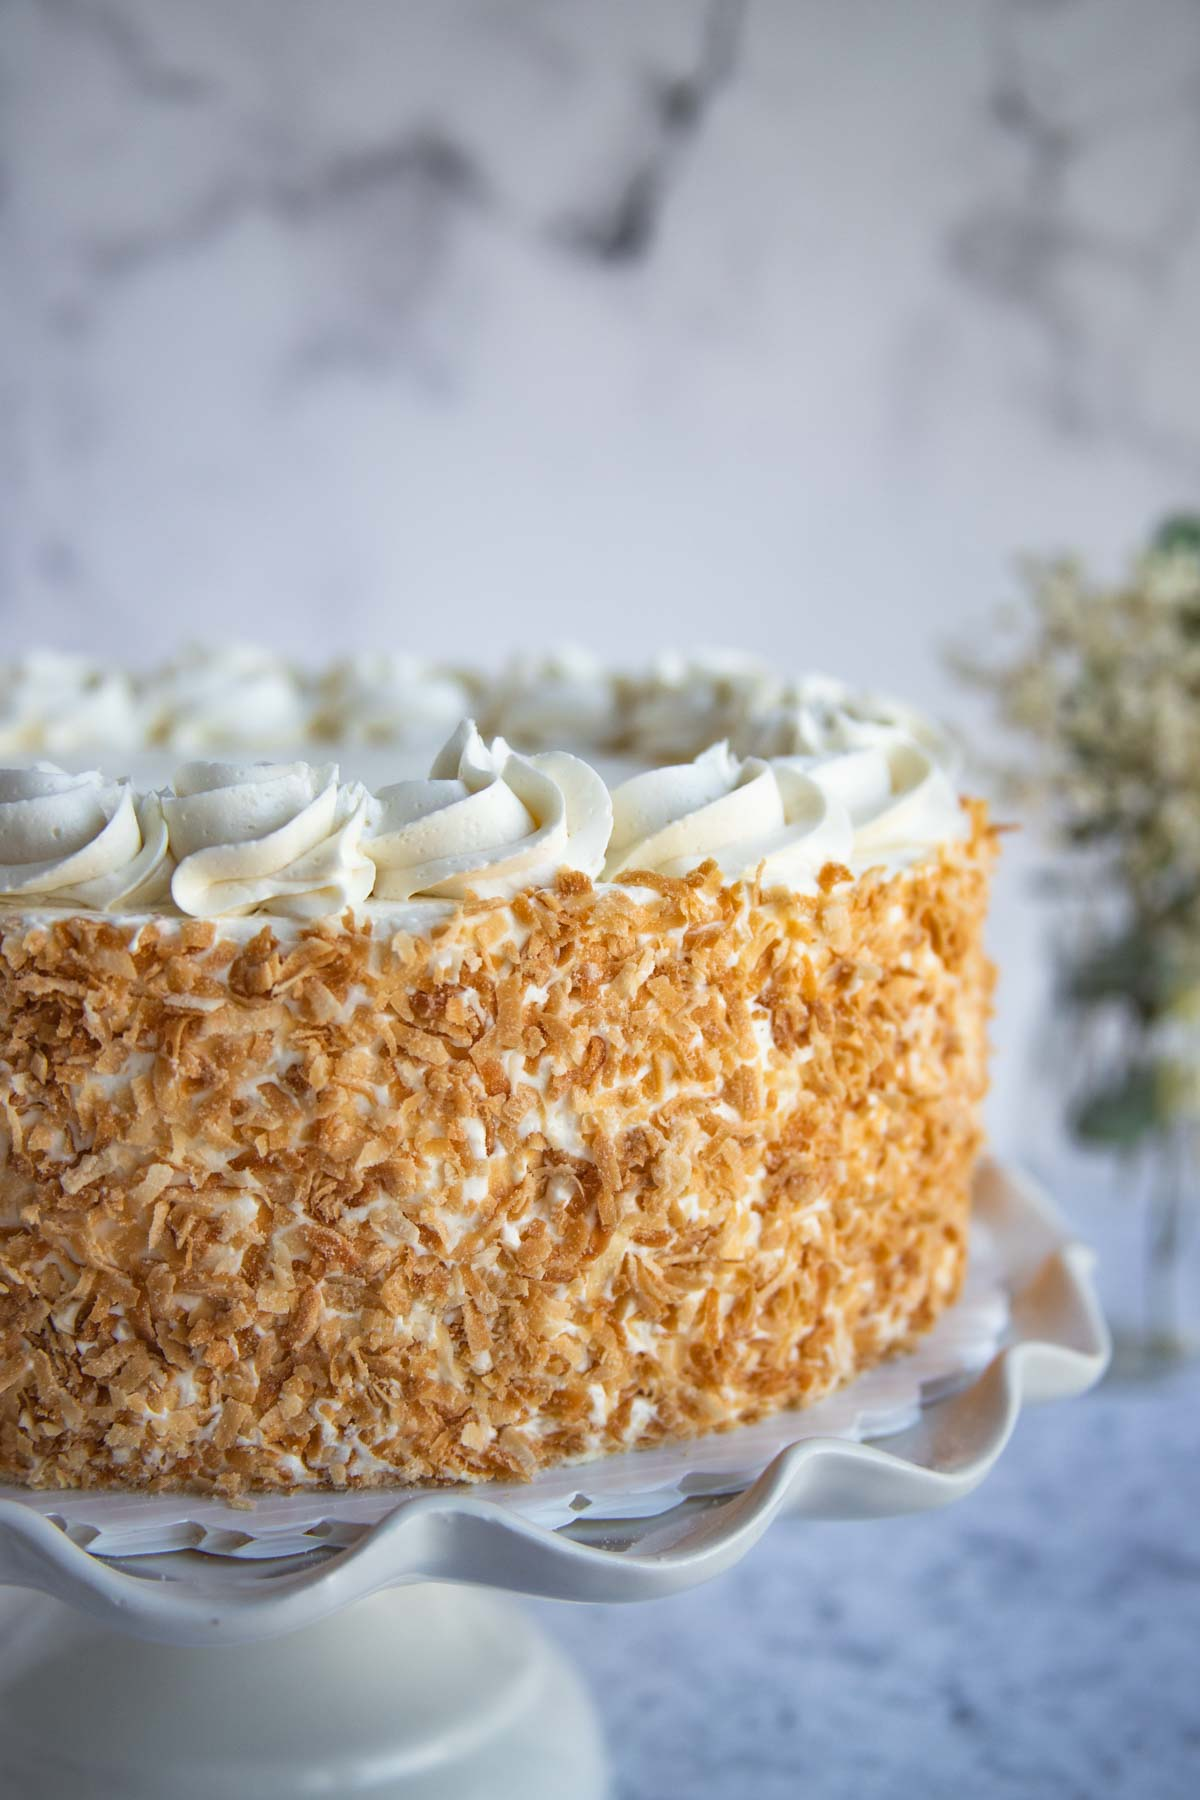 Coconut Cake with toasted coconut coating on a cake stand.  Flowers in the background.